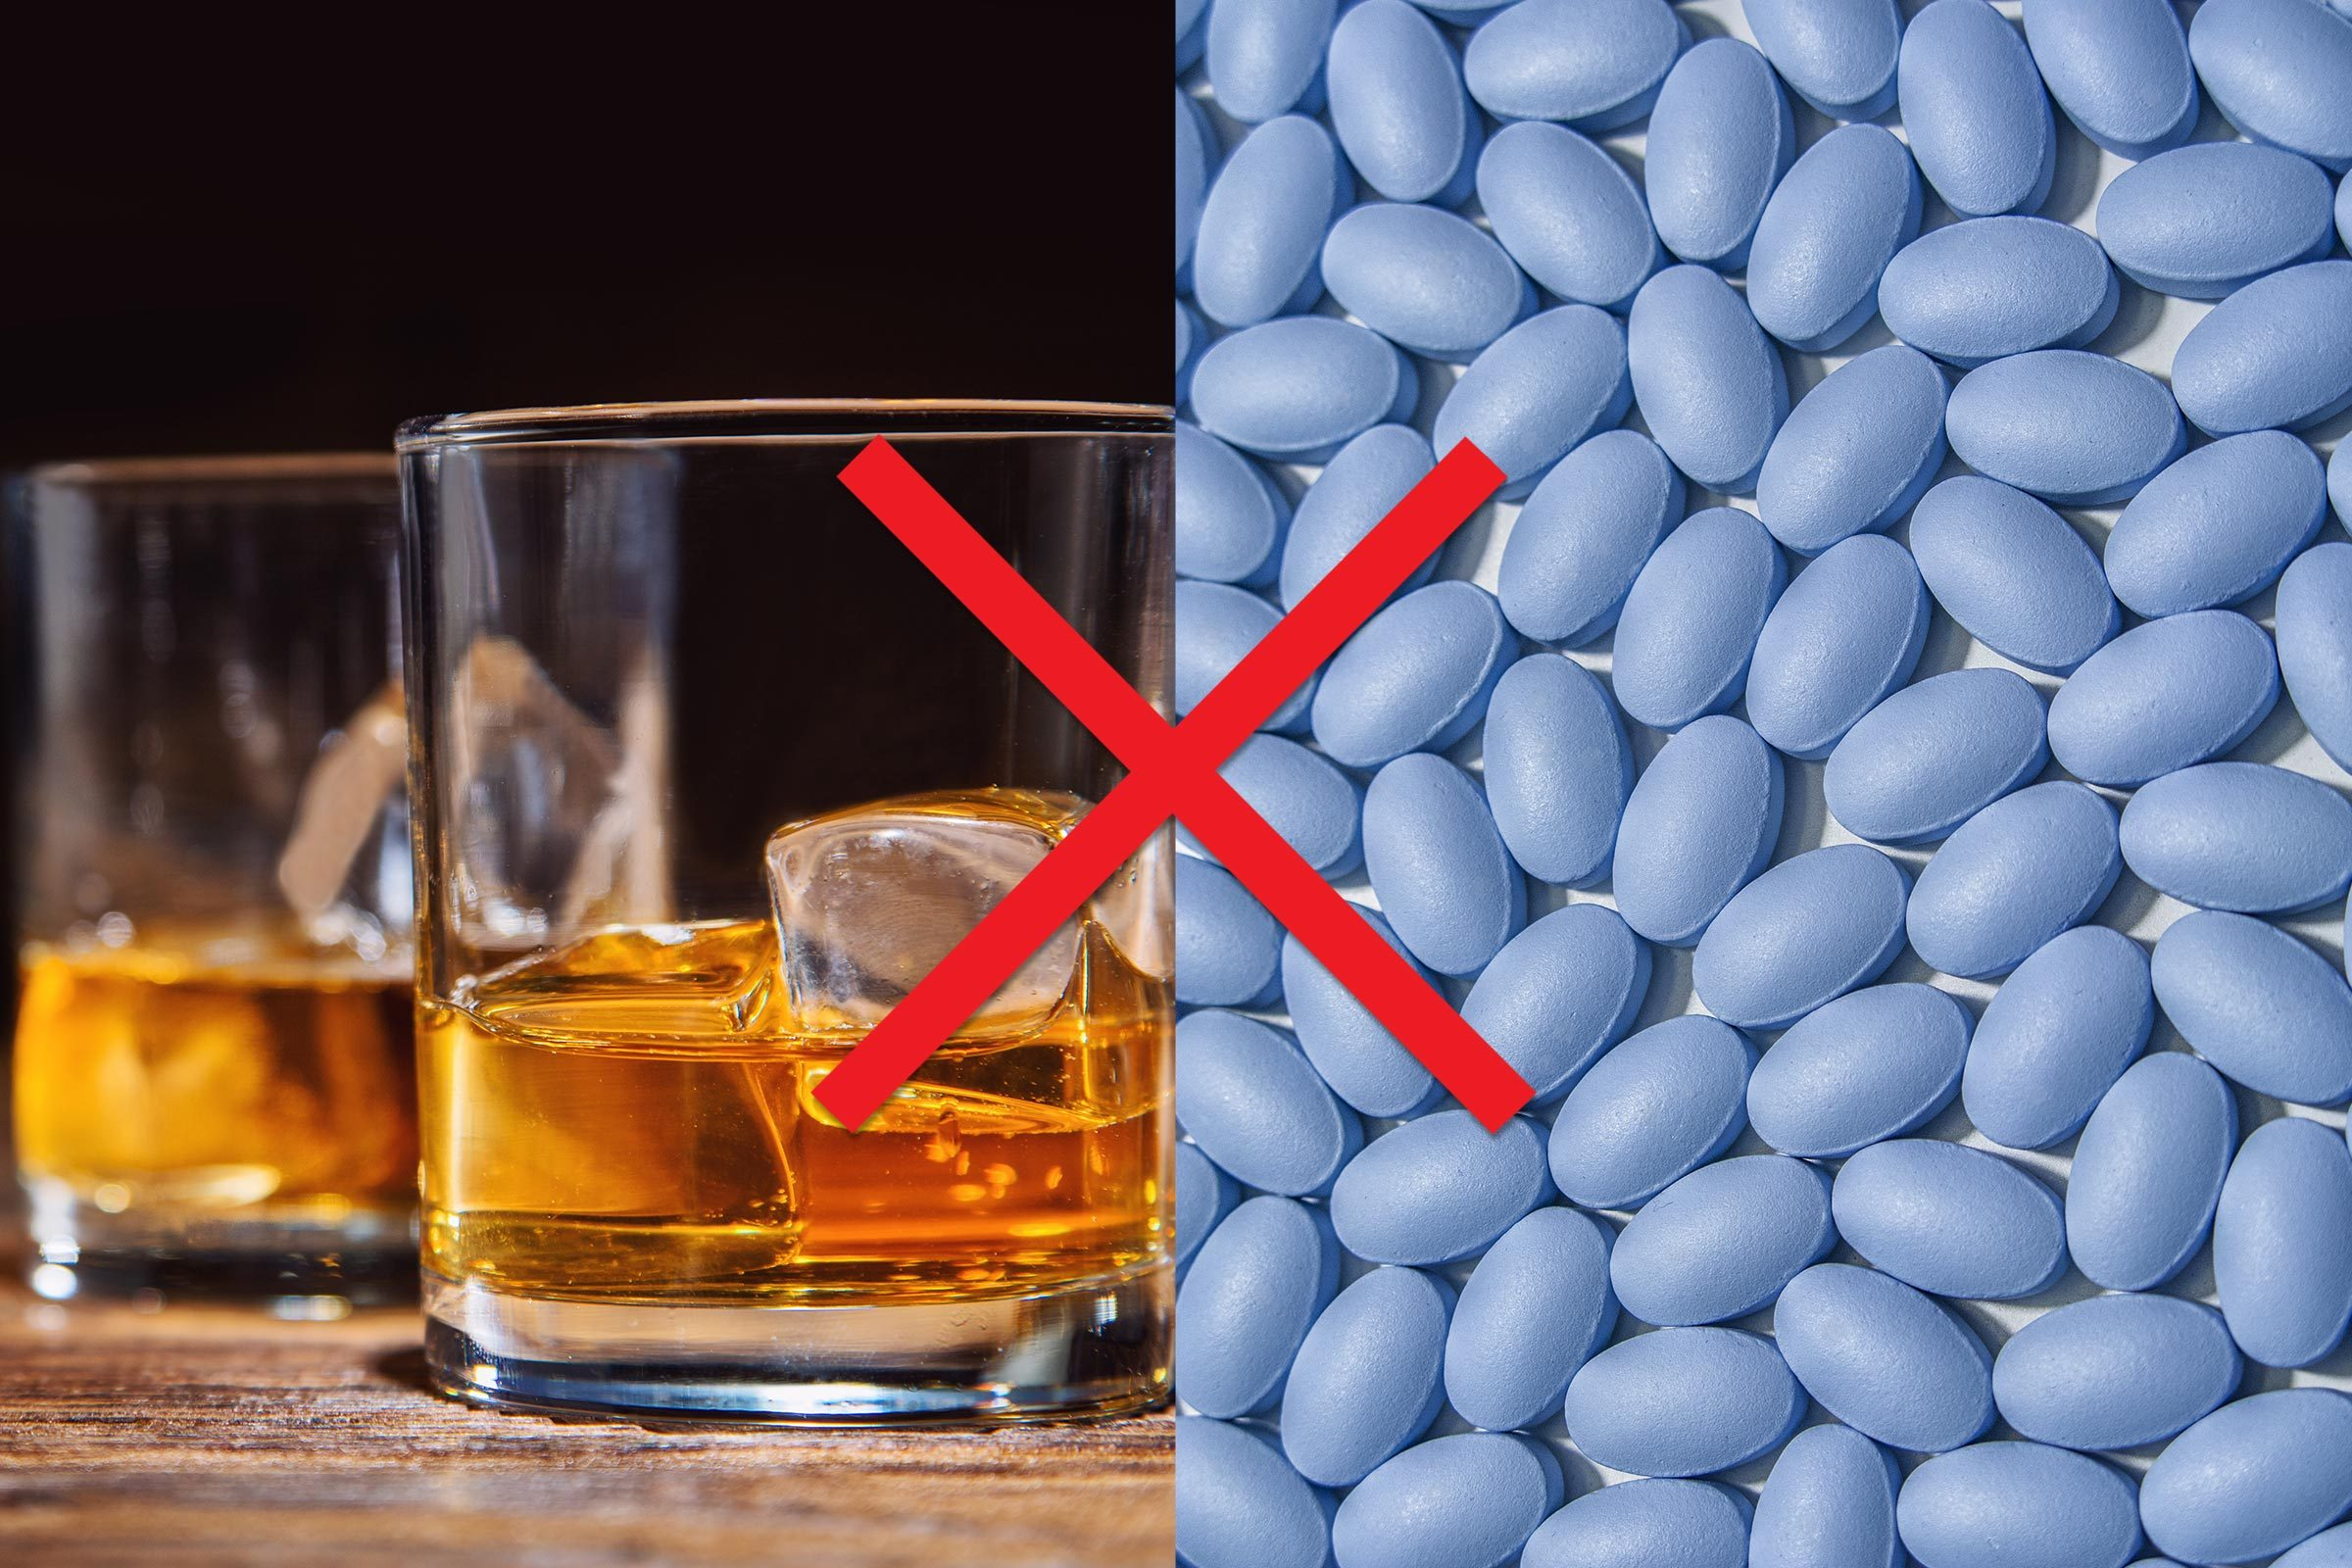 The 12 Medications You Should Never Mix with Alcohol